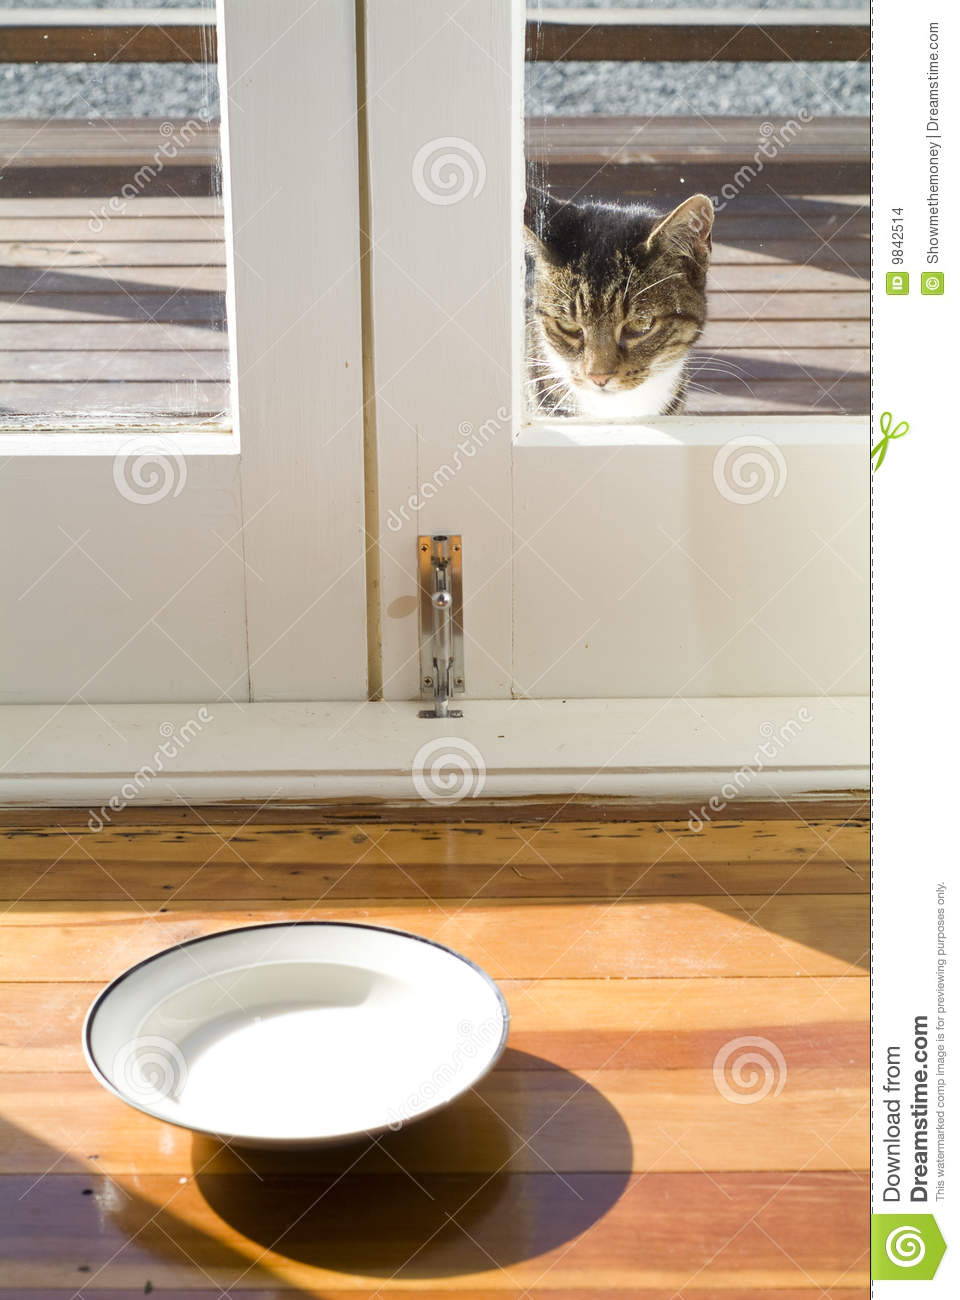 Cat And Saucer Of Milk Stock Photo Image Of Dish